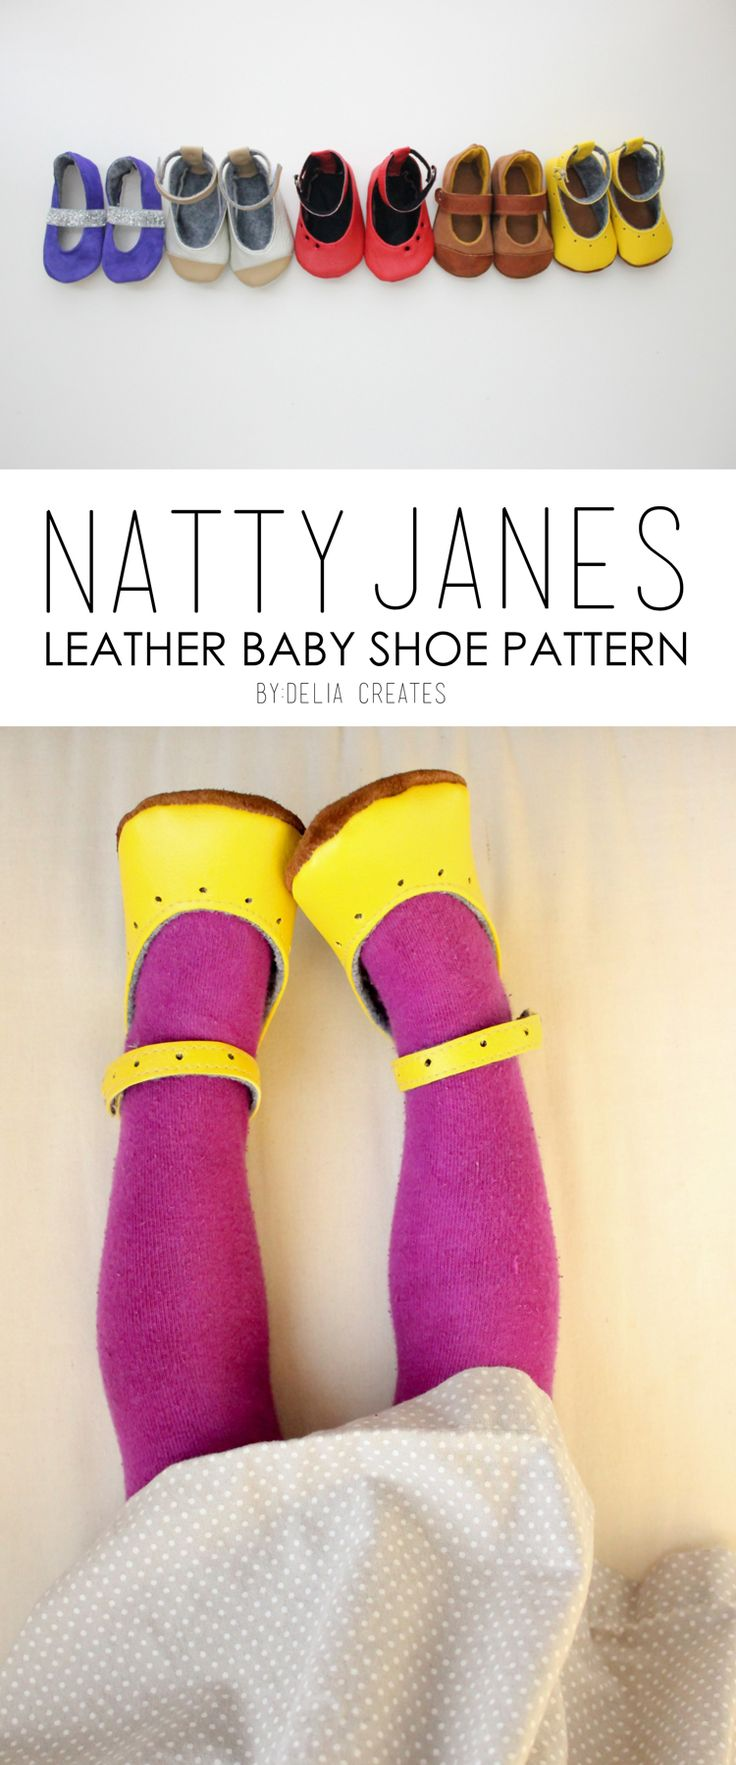 Natty Janes Leather Baby Shoe PDF Pattern by @Delia Aguilar Zuani Aguilar Zuani Aguilar Zuani Creates - these are so adorable!!!